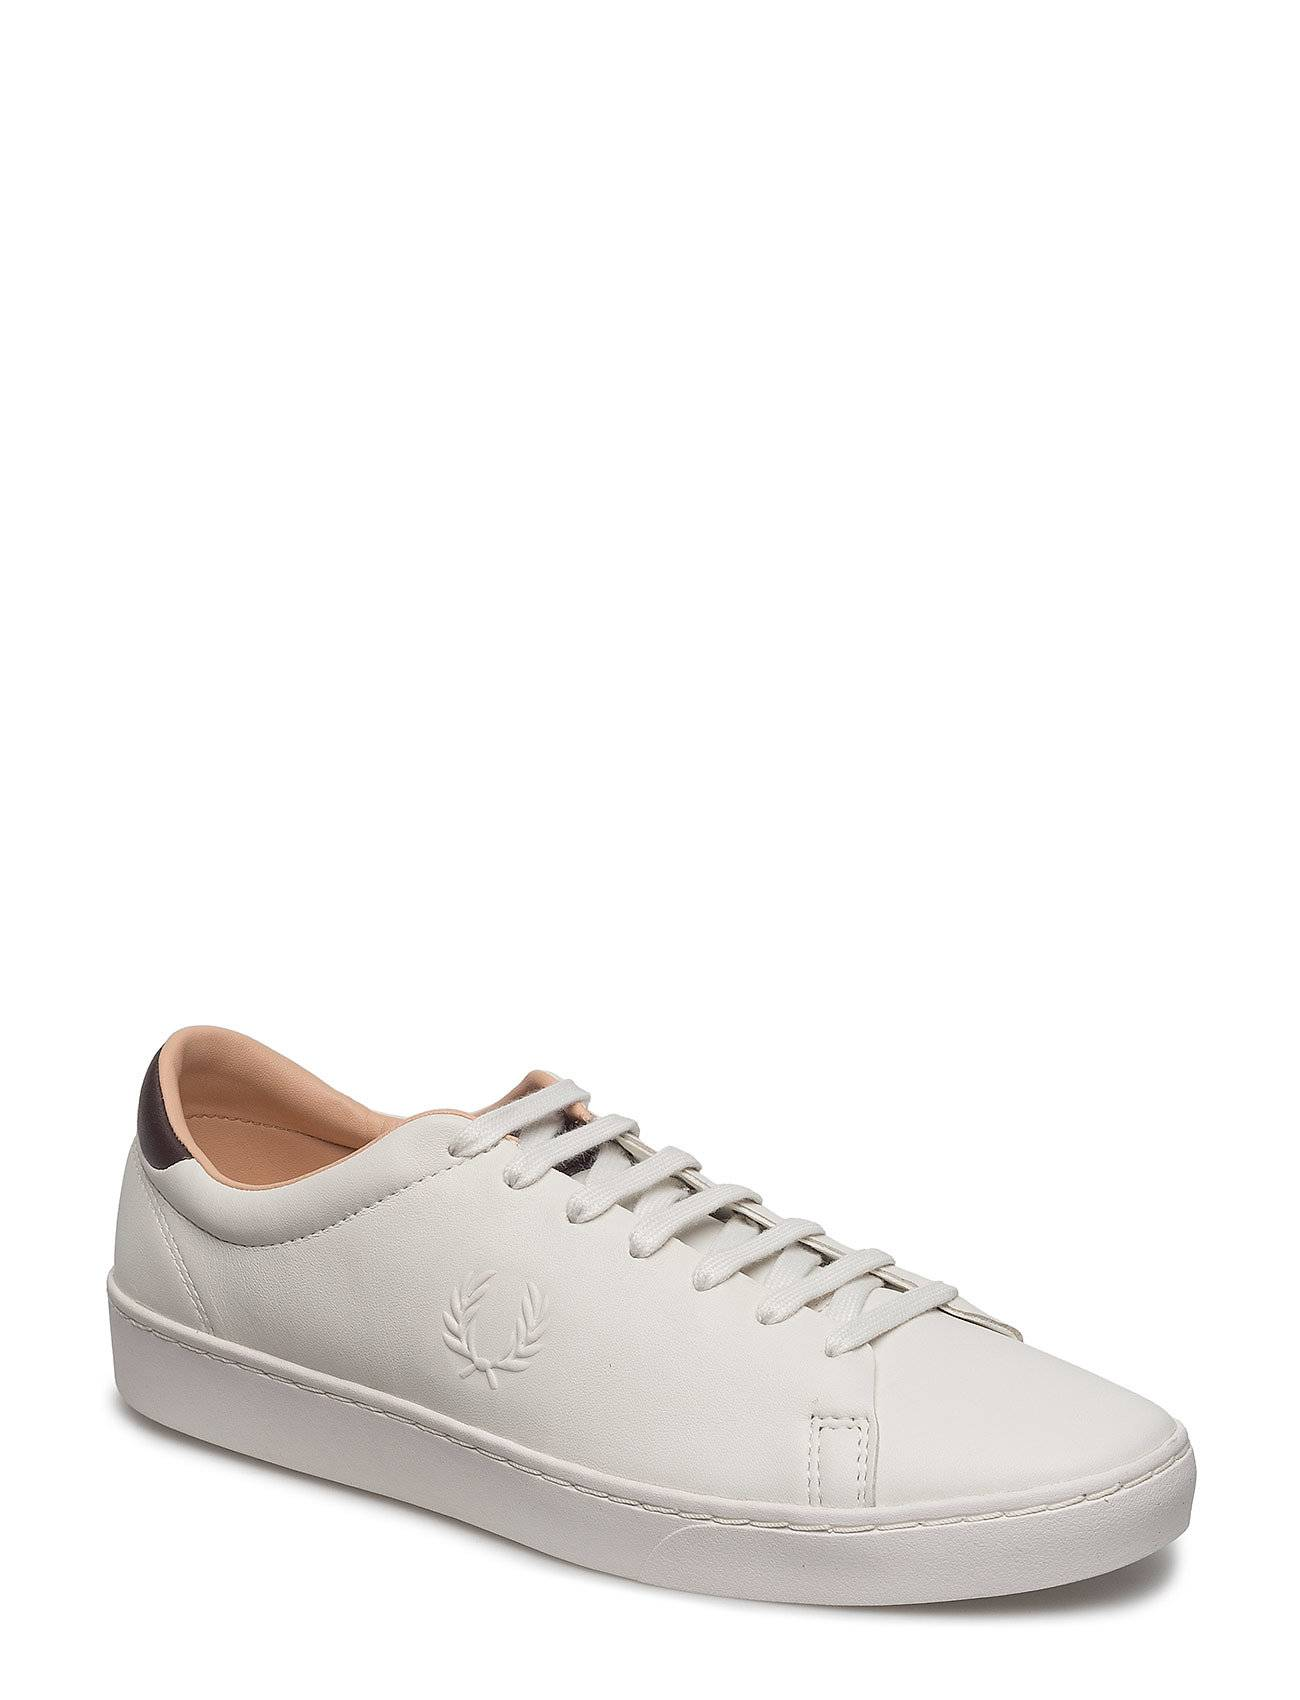 Fred Perry Spencer Premium Lth